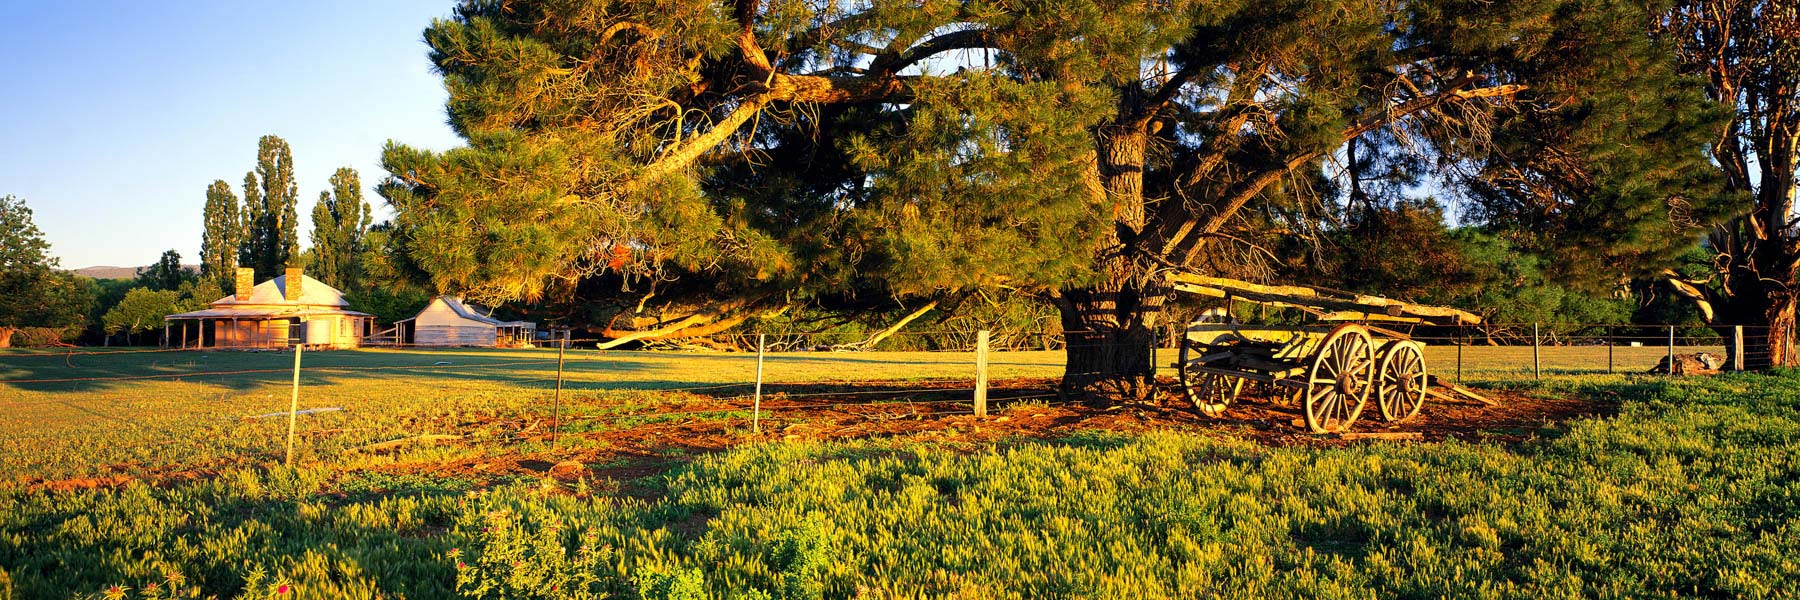 A welcoming country homestead in Benambra, Victoria, Australia.